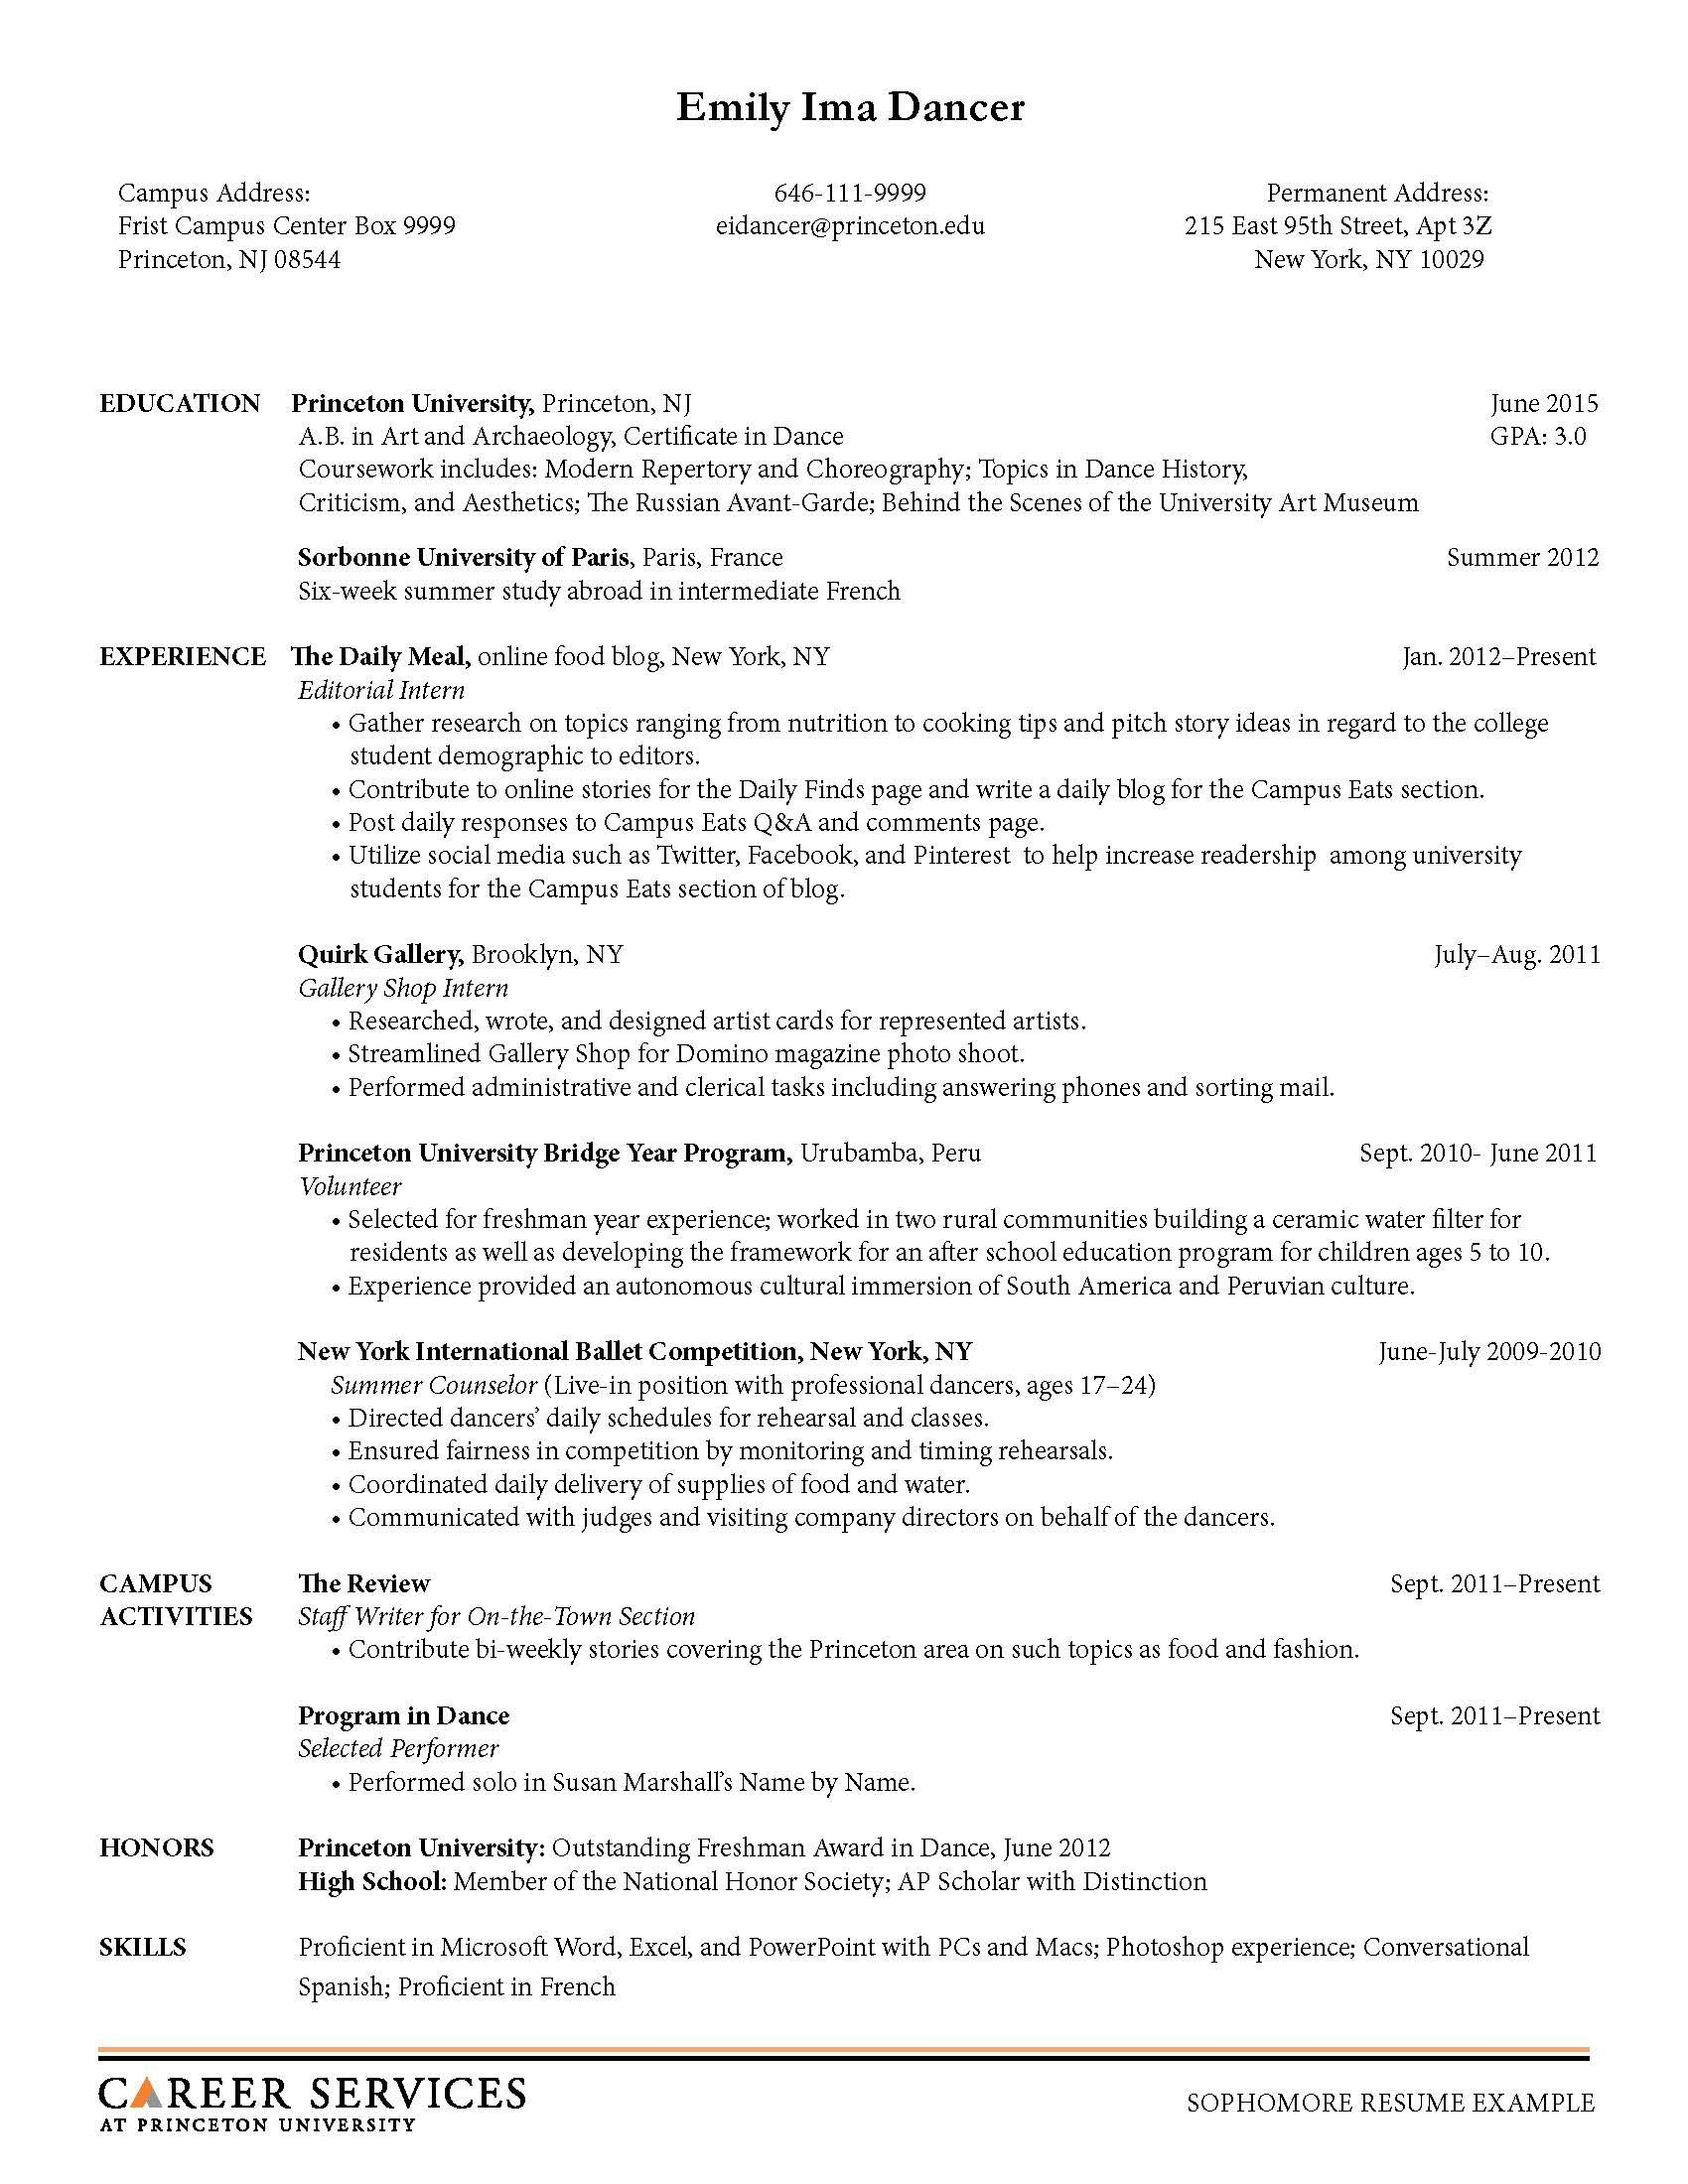 Picnictoimpeachus  Winsome Sample Resume Resume And Career On Pinterest With Lovely Resume Restaurant Besides Objective Examples For Resumes Furthermore How To Make A Resume No Experience With Delightful Edit My Resume Also Hospitality Resume Examples In Addition Resume Services Chicago And New Graduate Rn Resume As Well As Biomedical Engineering Resume Additionally Resume Wizard Free Download From Pinterestcom With Picnictoimpeachus  Lovely Sample Resume Resume And Career On Pinterest With Delightful Resume Restaurant Besides Objective Examples For Resumes Furthermore How To Make A Resume No Experience And Winsome Edit My Resume Also Hospitality Resume Examples In Addition Resume Services Chicago From Pinterestcom